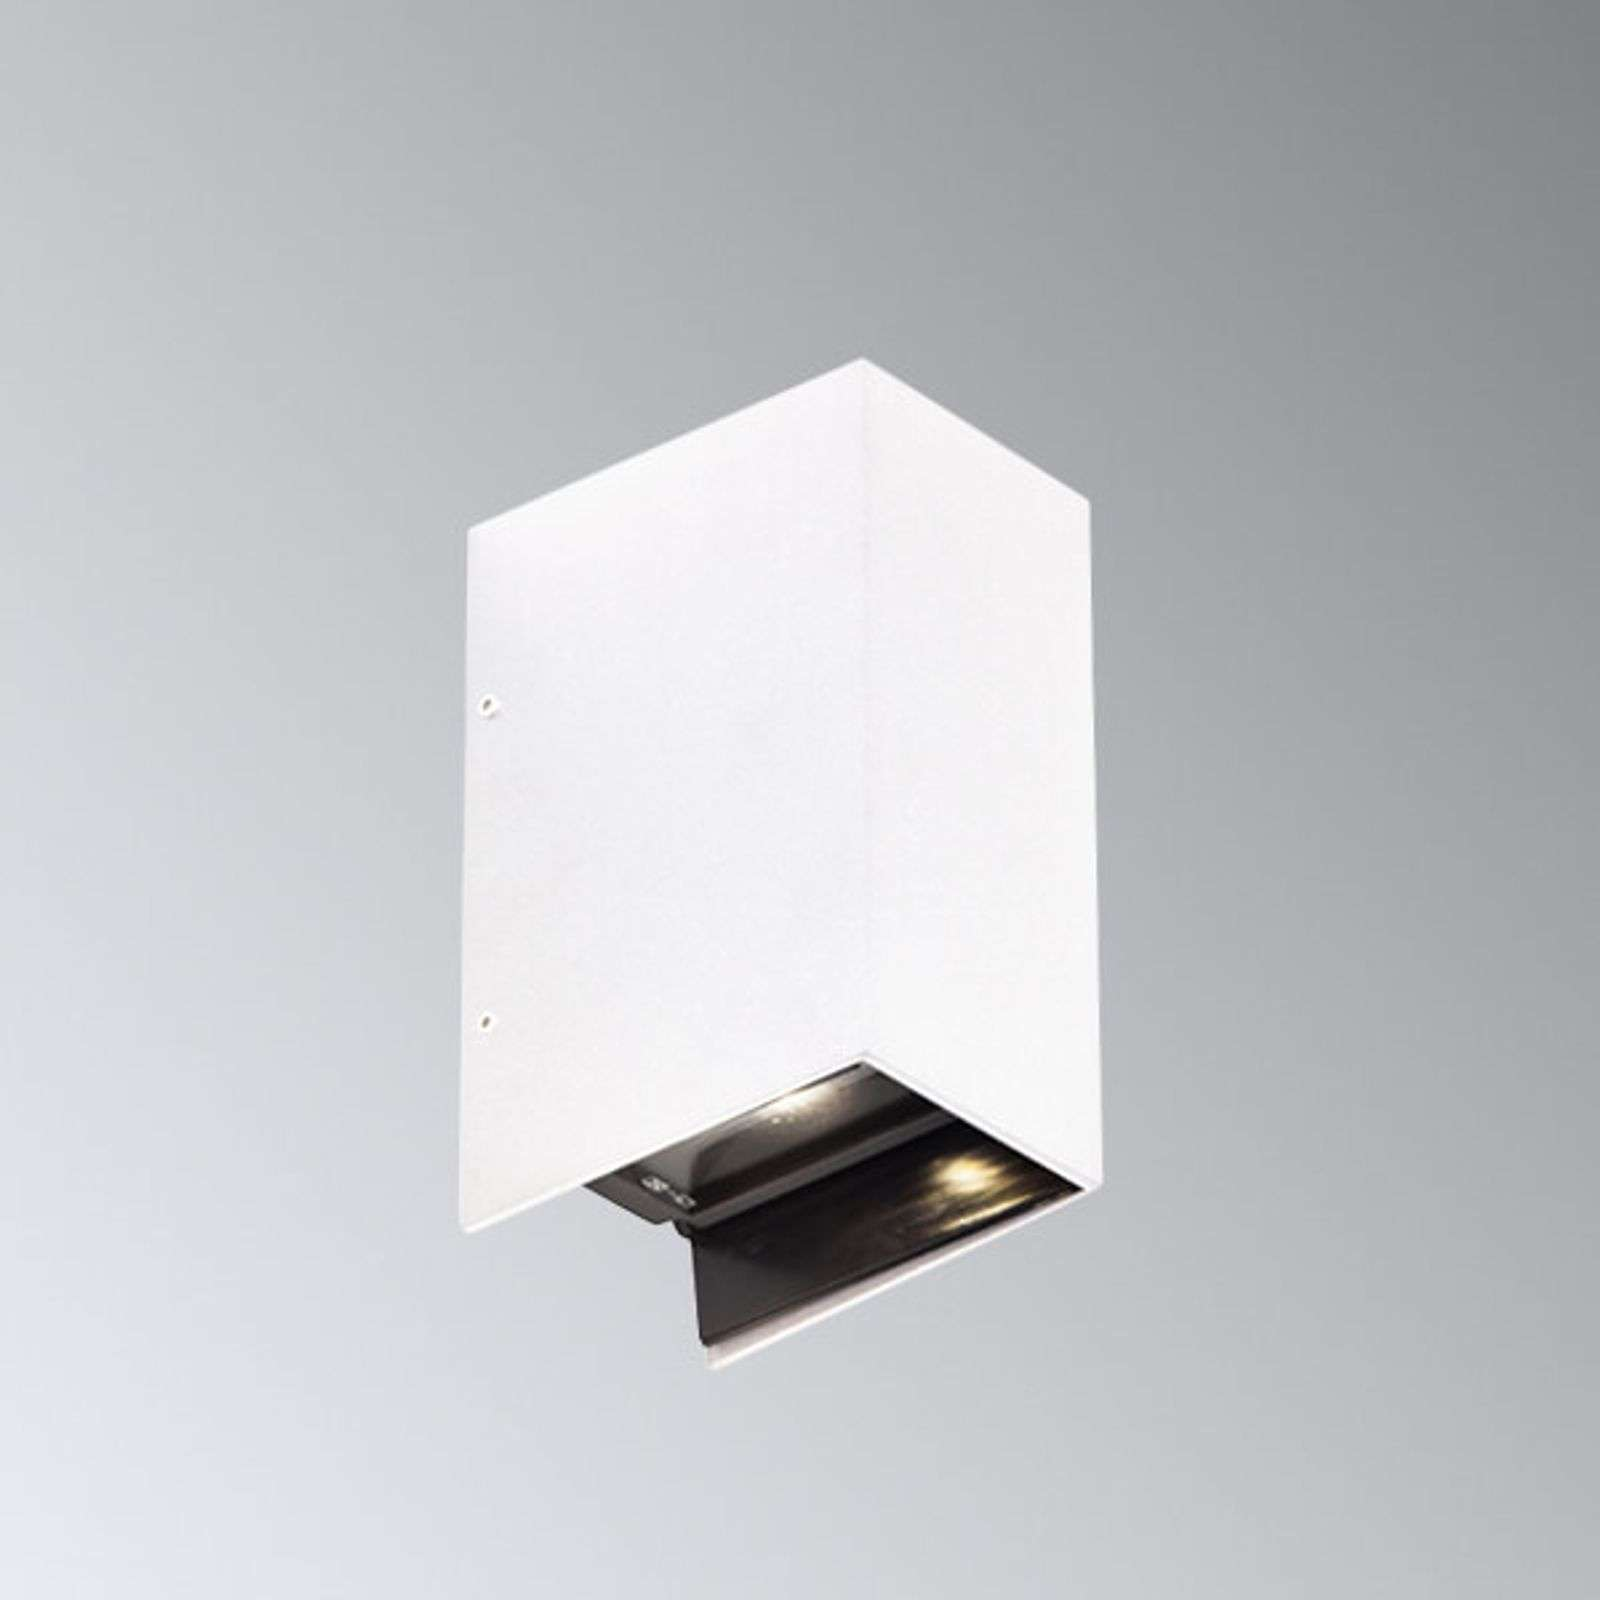 Aplique LED exterior Adapt, blanco 2 bombillas